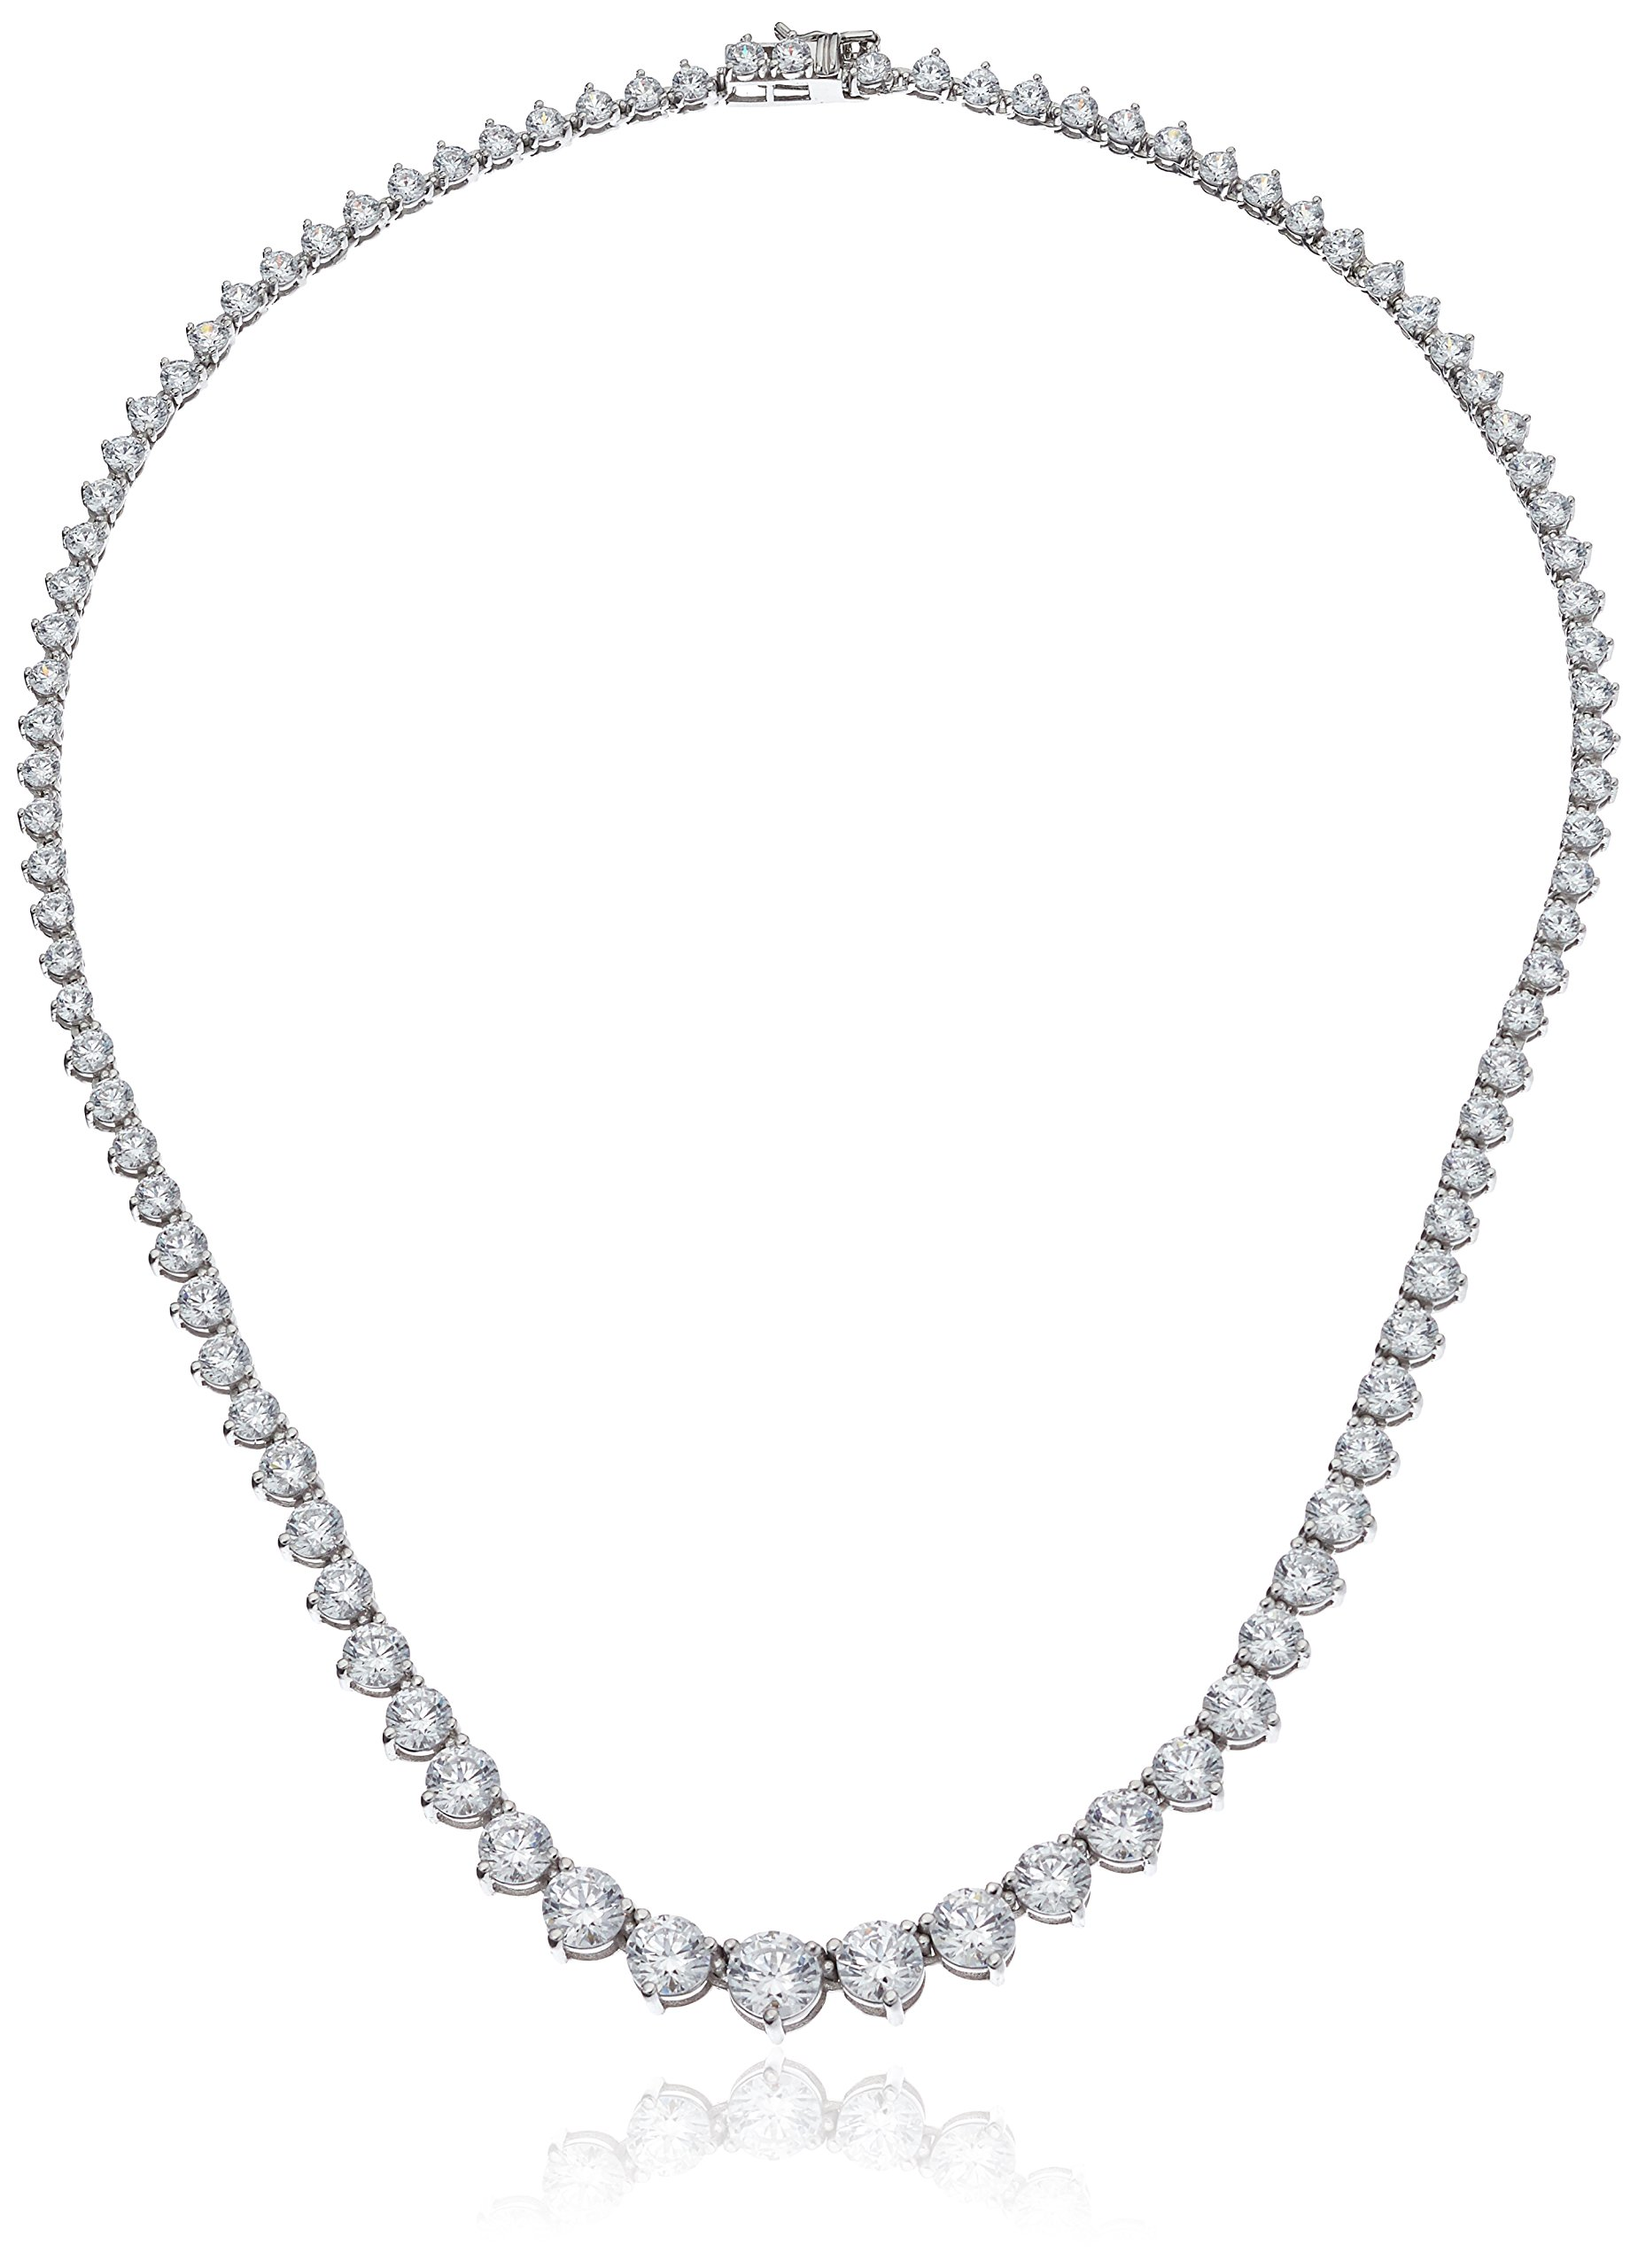 Platinum Plated Sterling Silver Riviera Necklace set with Graduated Round Cut Swarovski Zirconia (20.75 cttw), 17'' by Amazon Collection